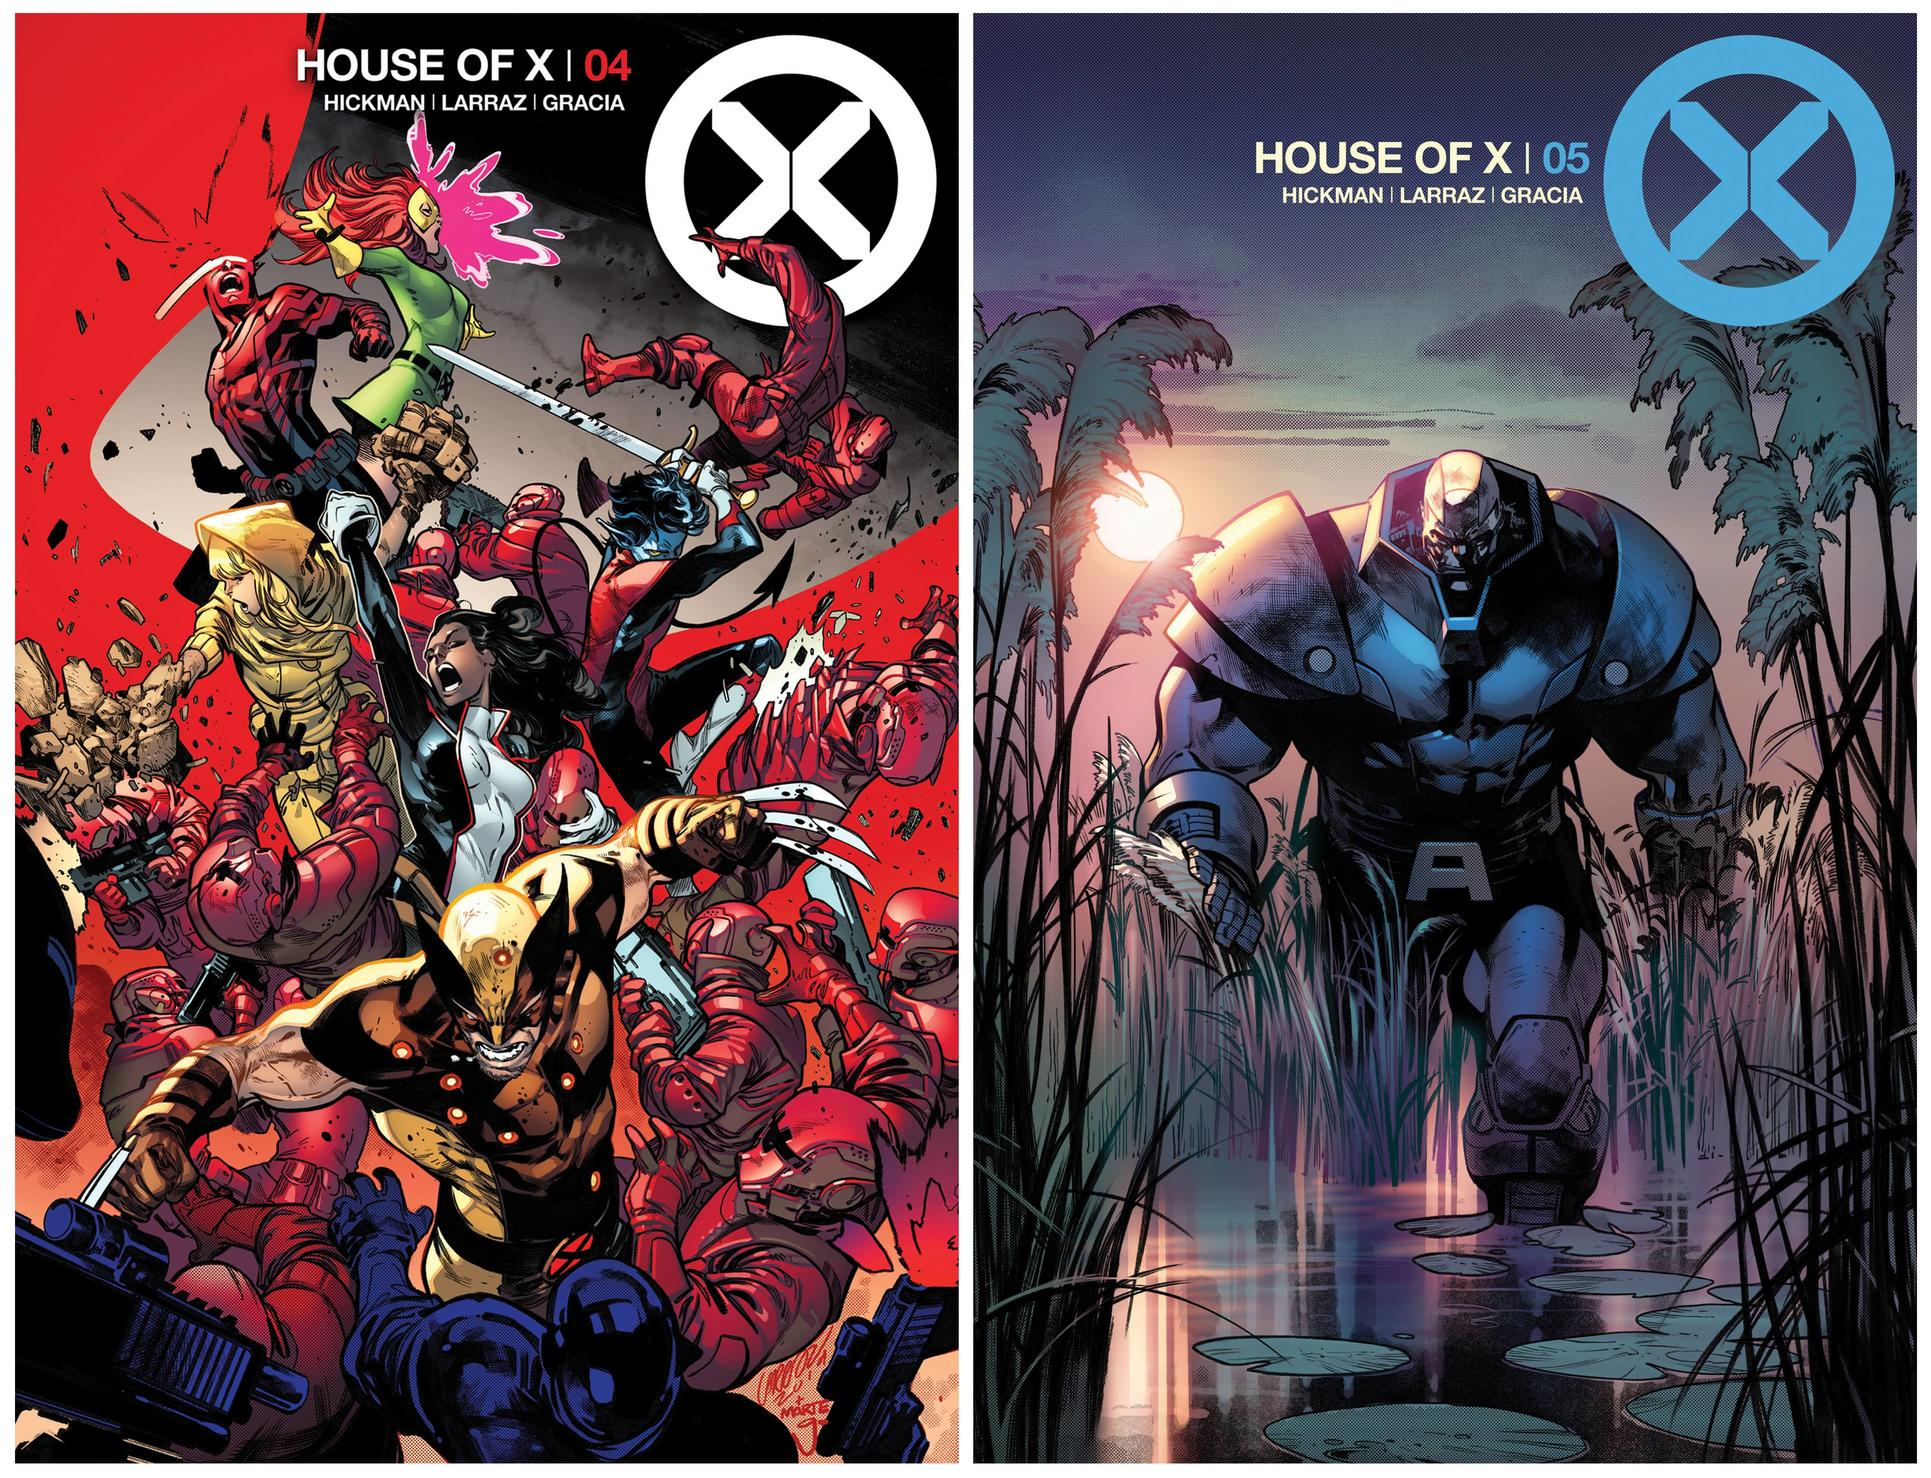 HOUSE OF X #4 AND #5